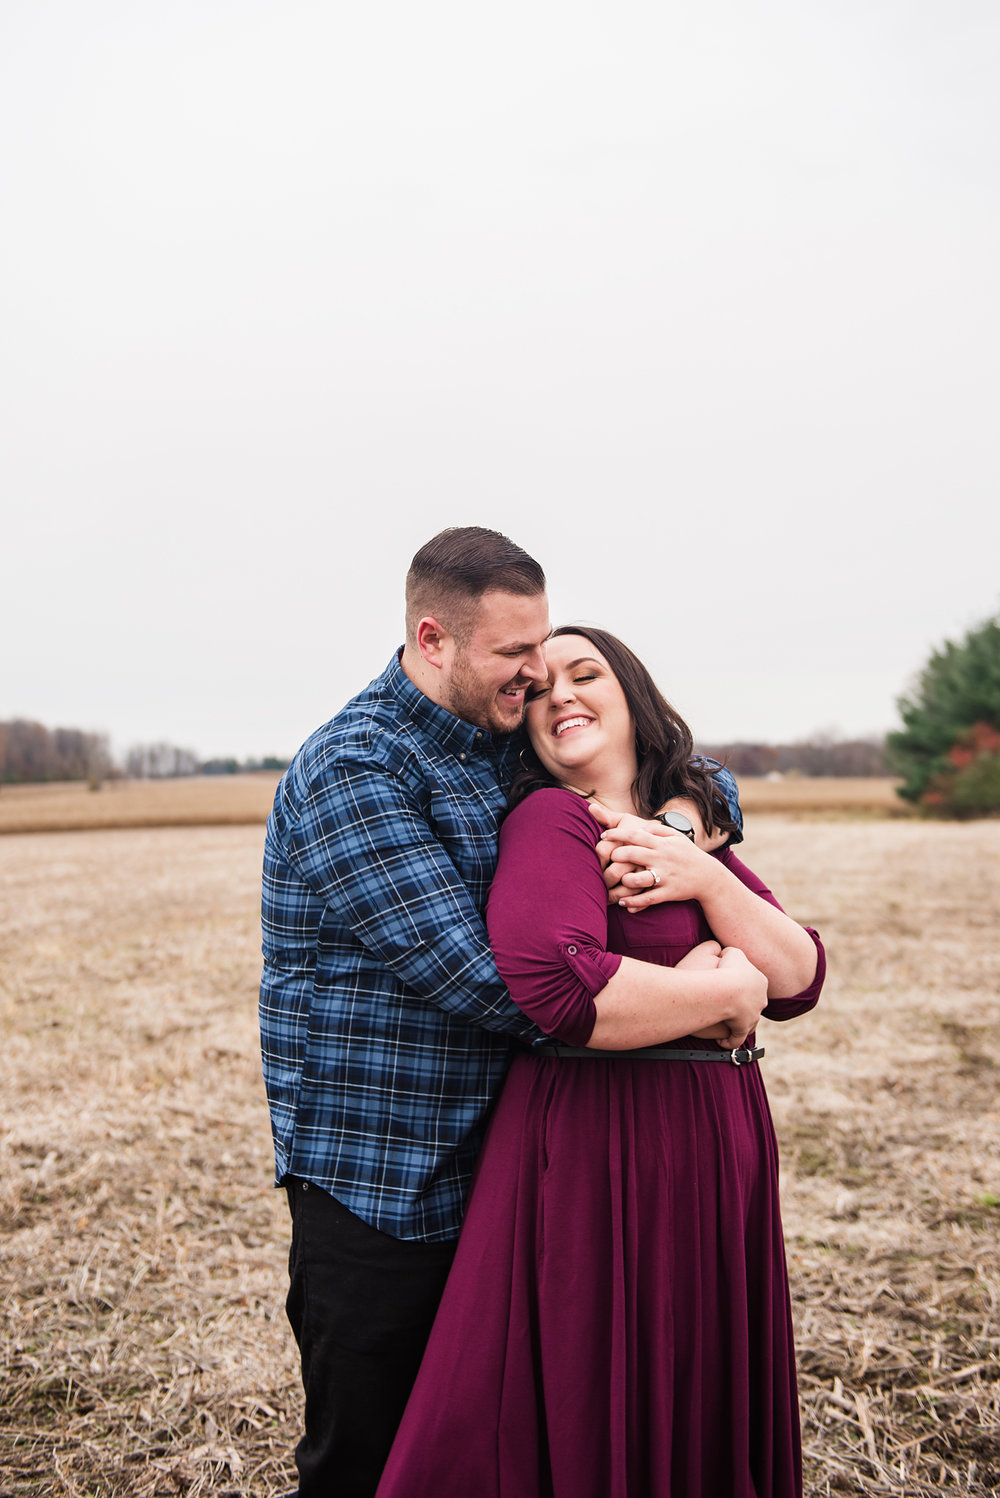 Tinker_Nature_Park_Rochester_Engagement_Session_JILL_STUDIO_Rochester_NY_Photographer_DSC_0546.jpg